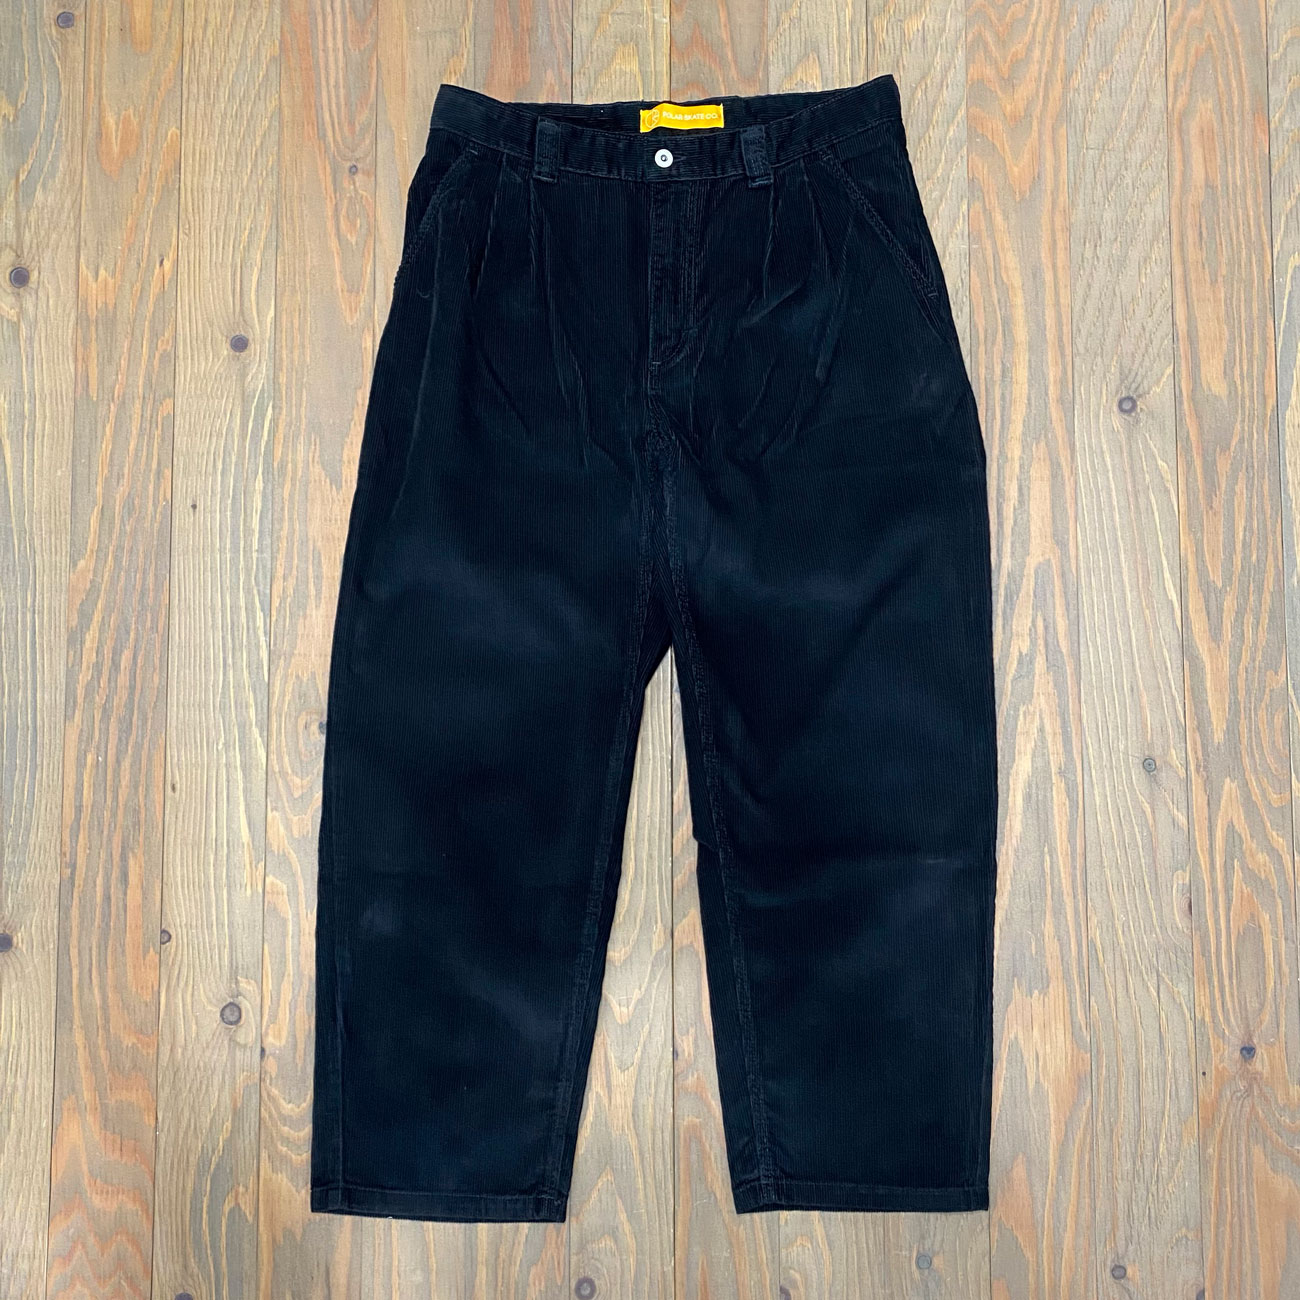 POLAR GROUND CHINOS PANTS BLACK